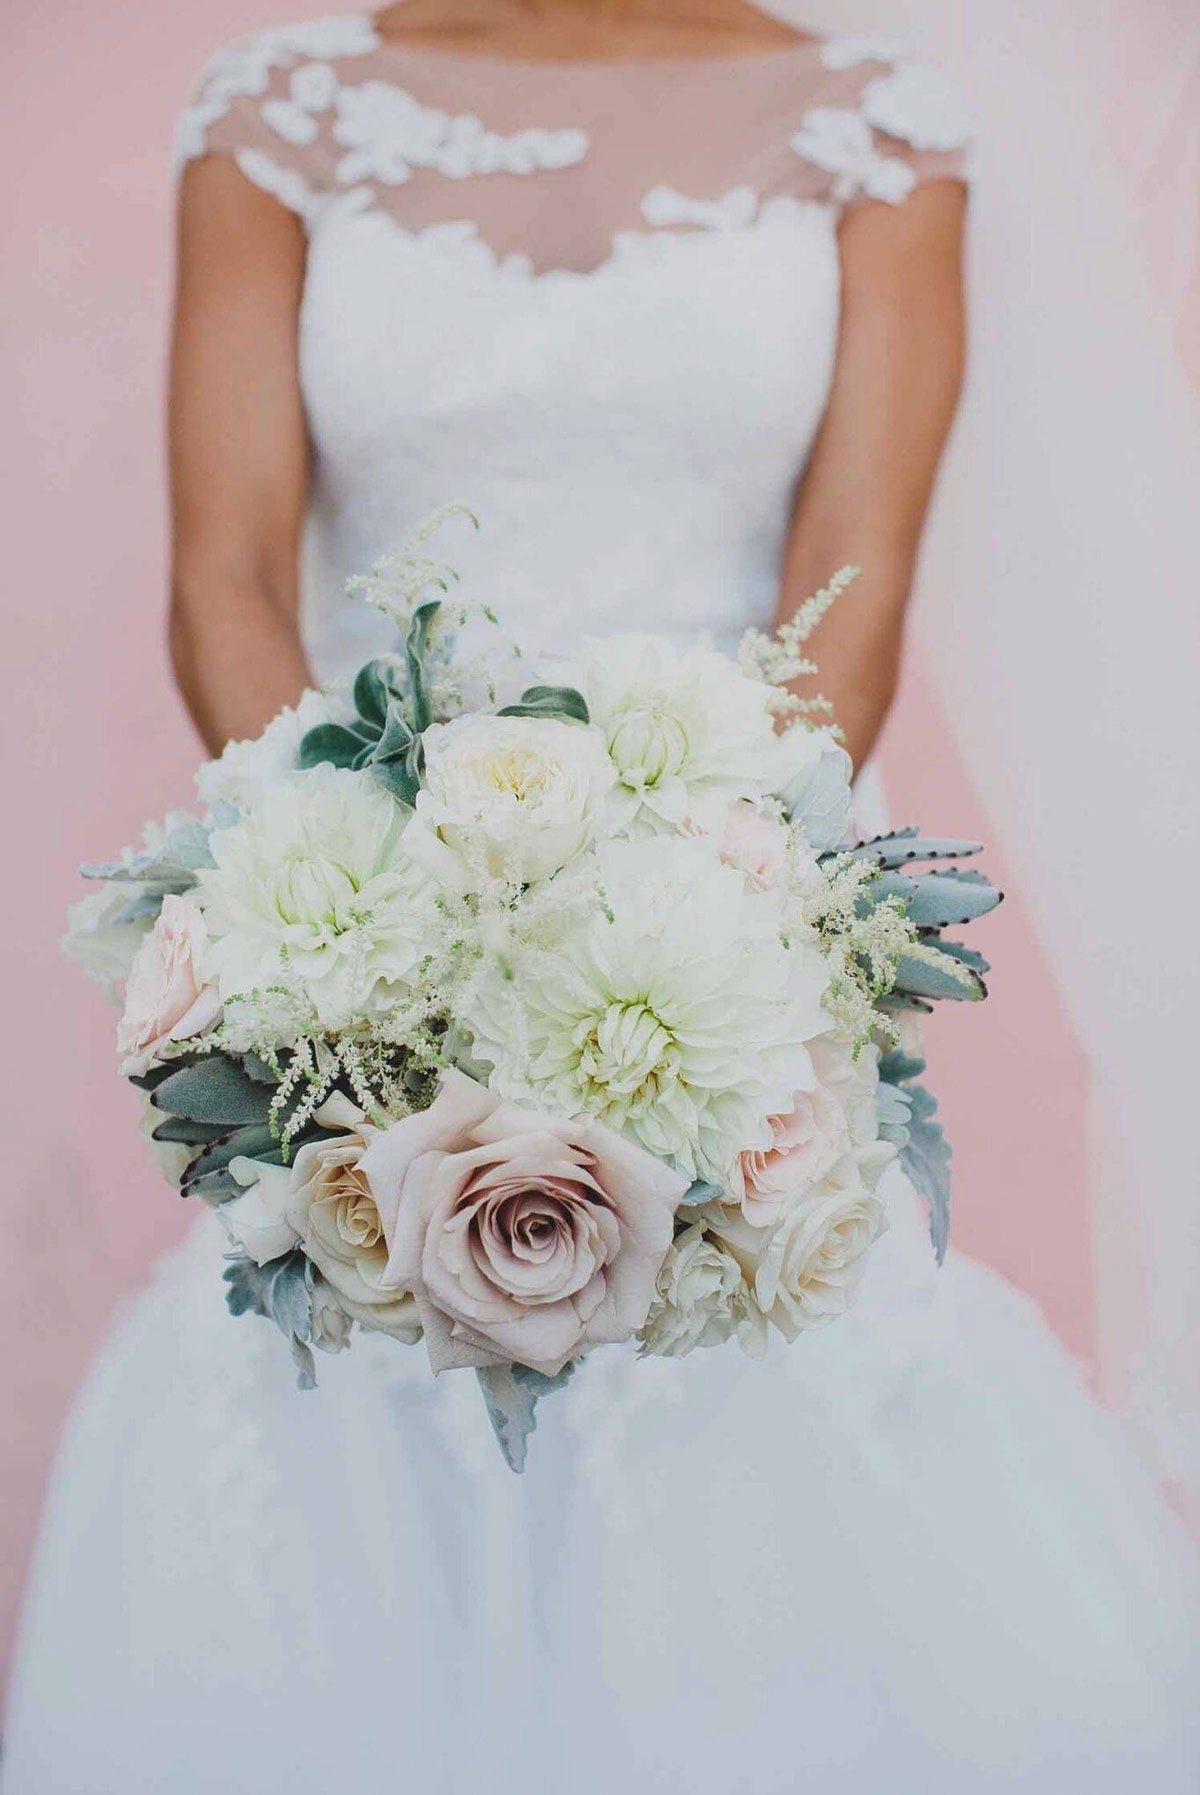 Blush and White Bouquet with Roses and Dahlias